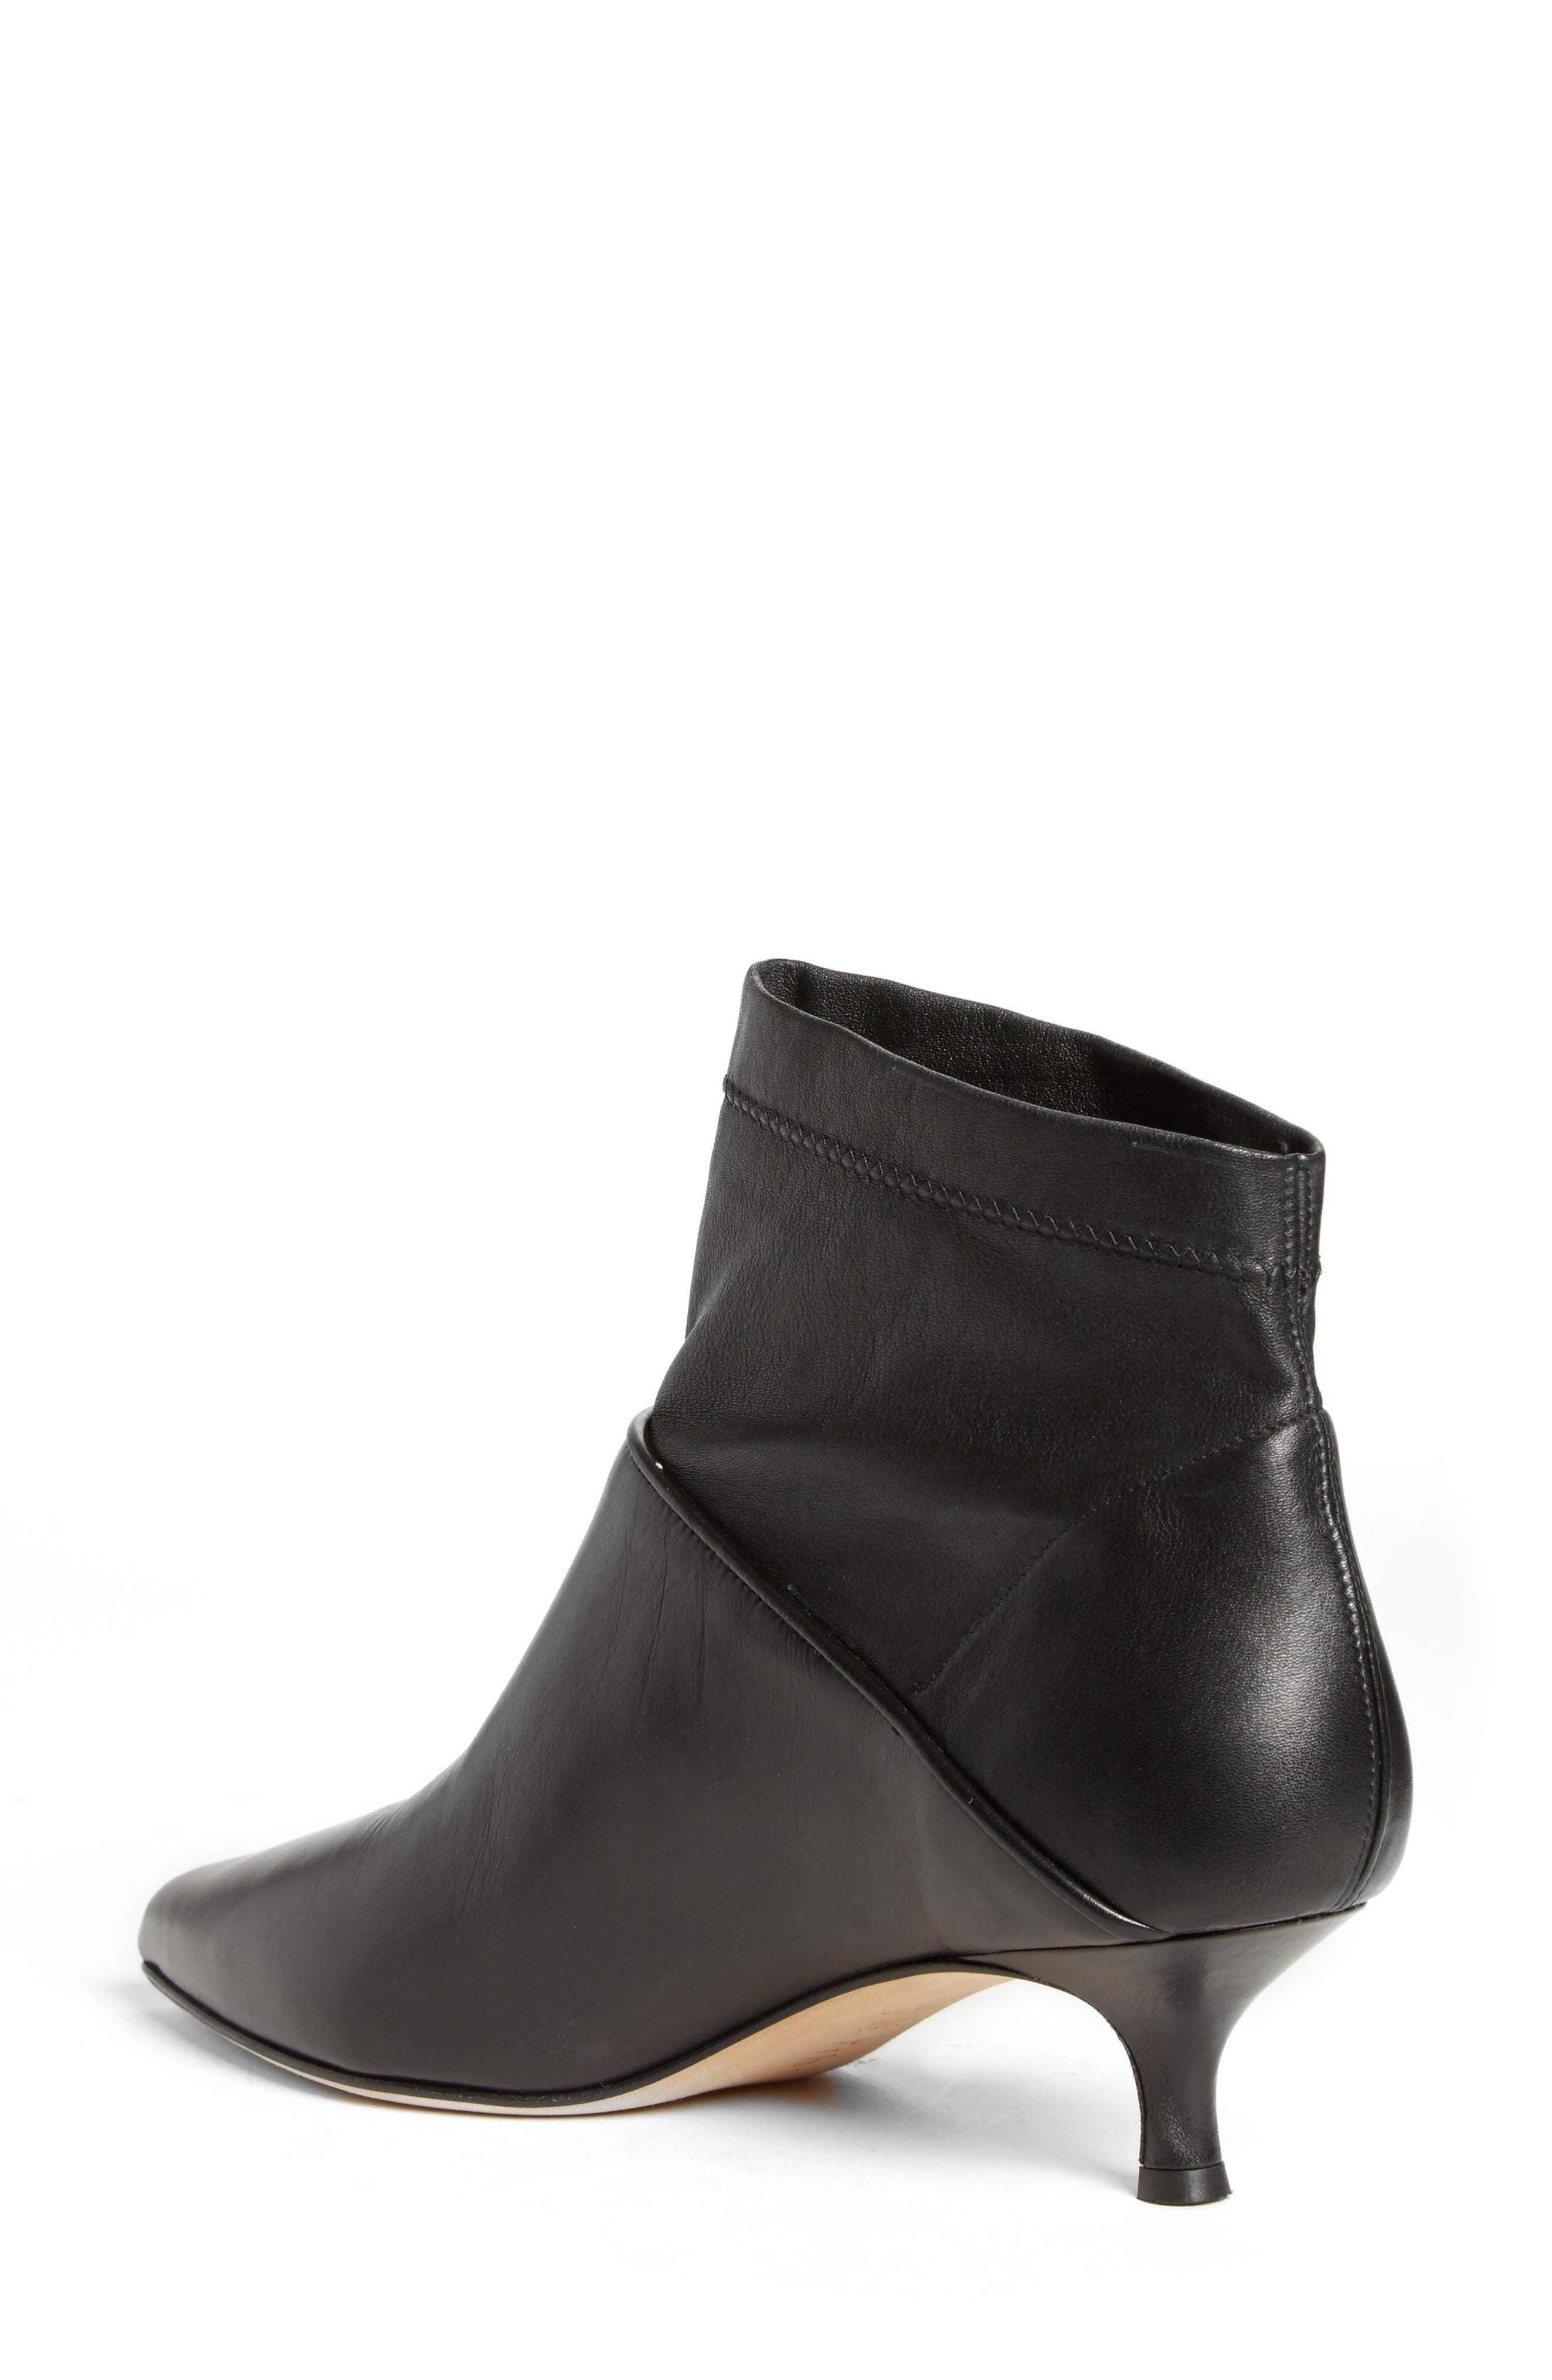 Jean Sock Shaft Bootie,                             Alternate thumbnail 2, color,                             Black